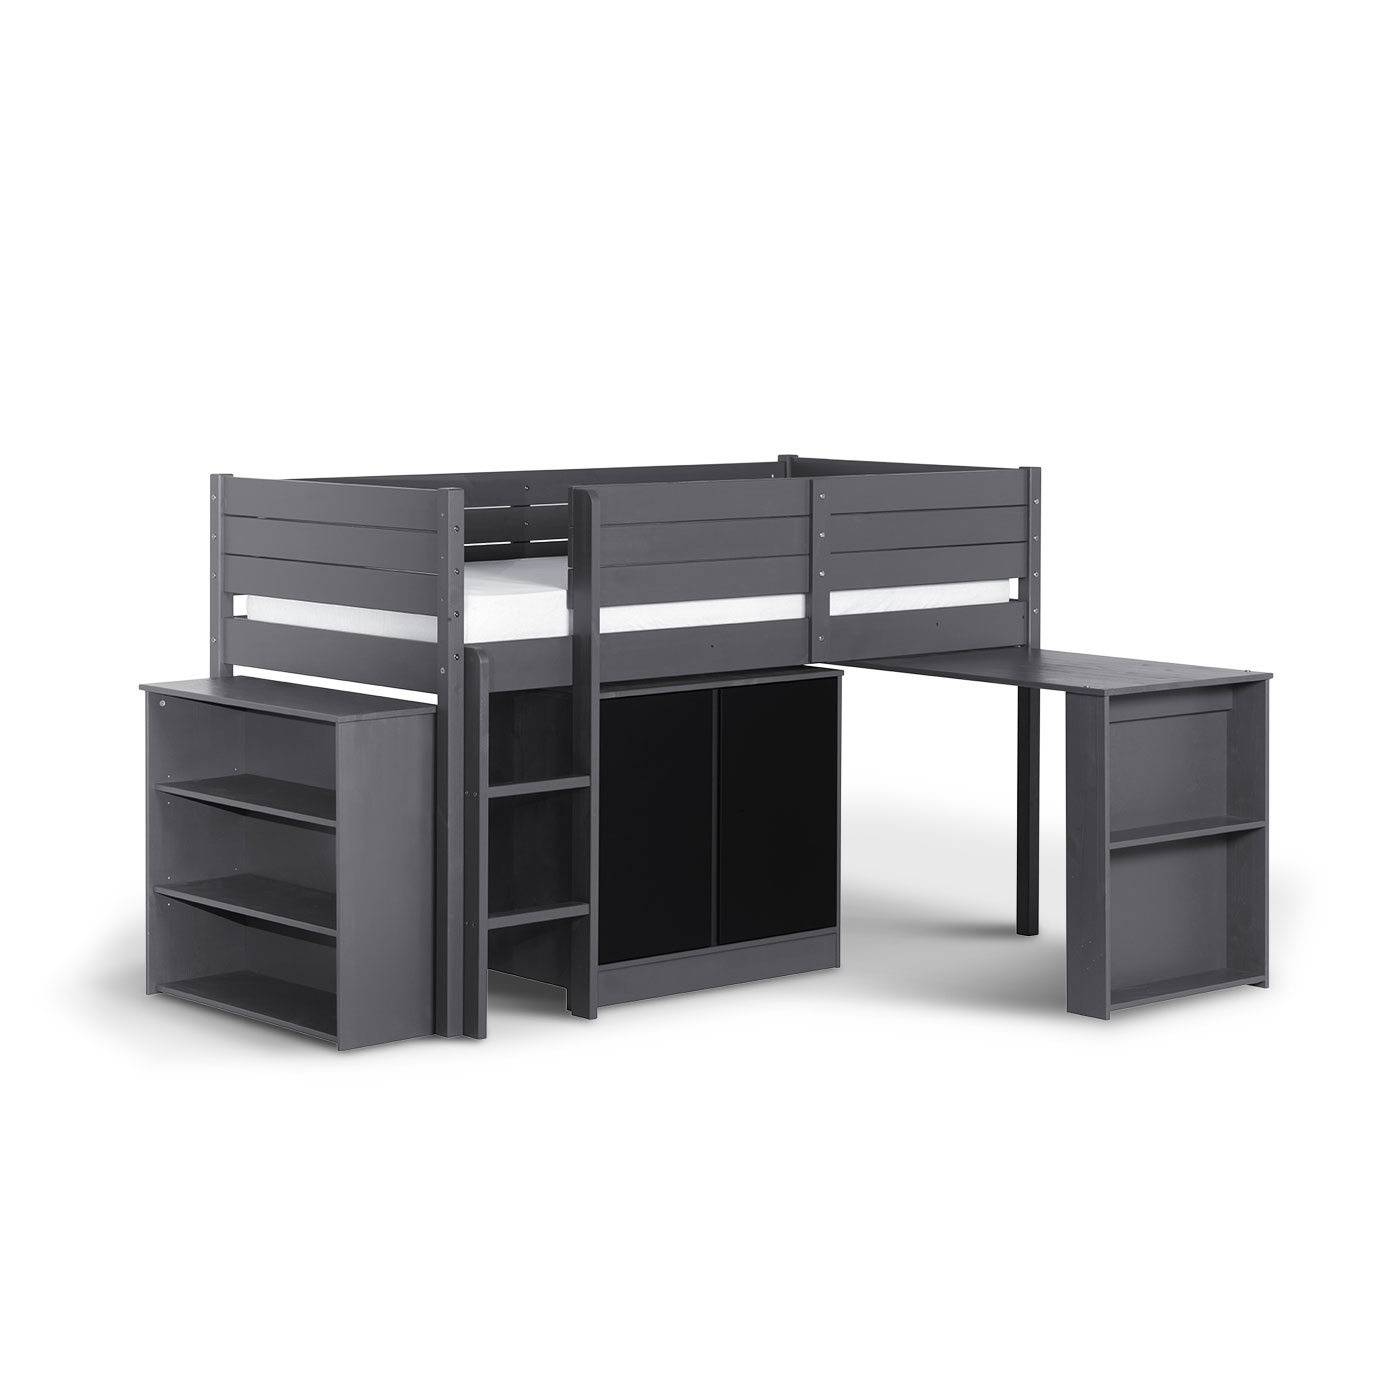 set complet pour enfant paraiso gris anthracite idkid 39 s. Black Bedroom Furniture Sets. Home Design Ideas